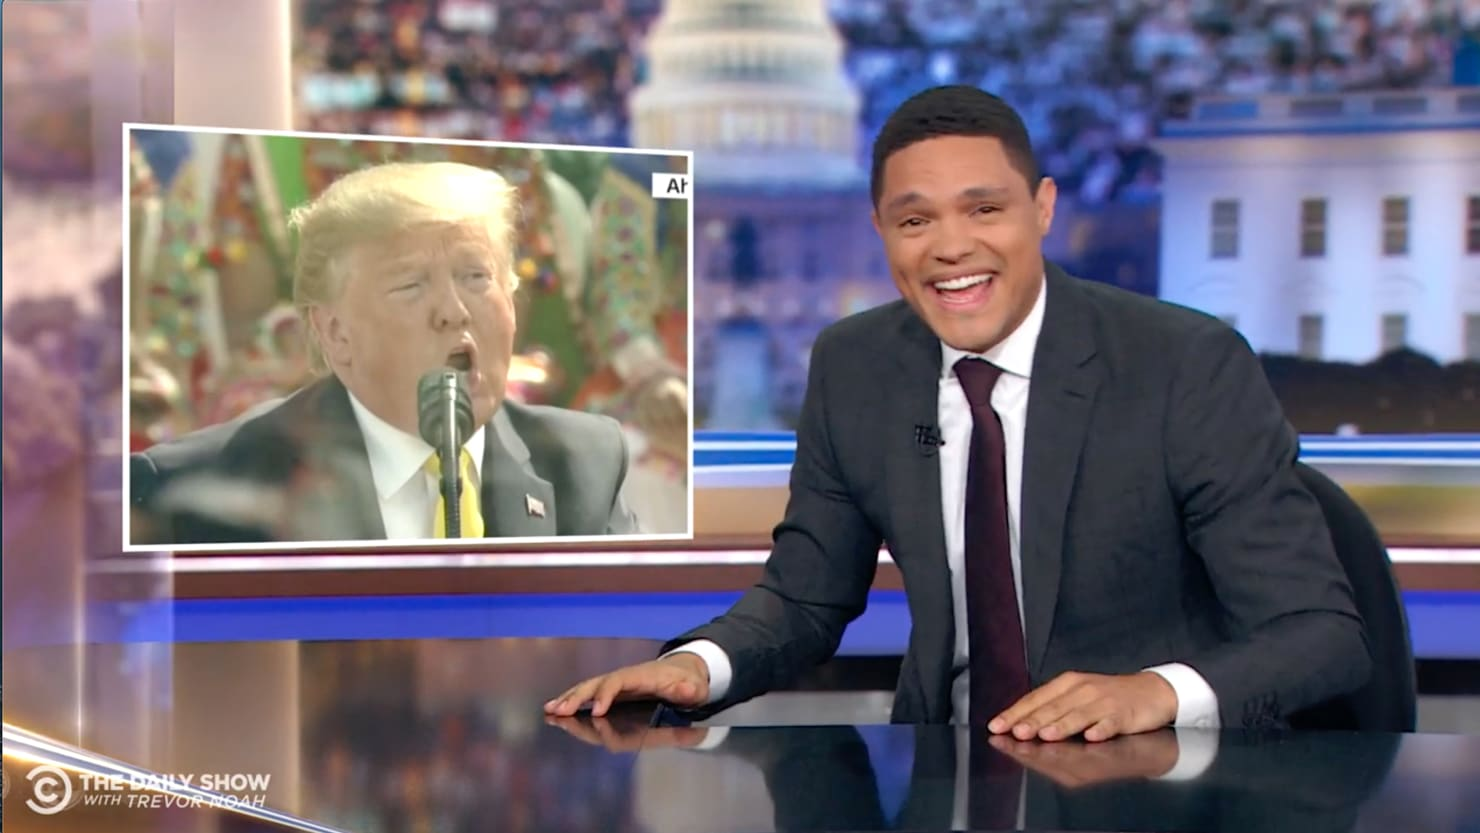 Trevor Noah Brutally Mocks Trump for 'Butchering' India Speech